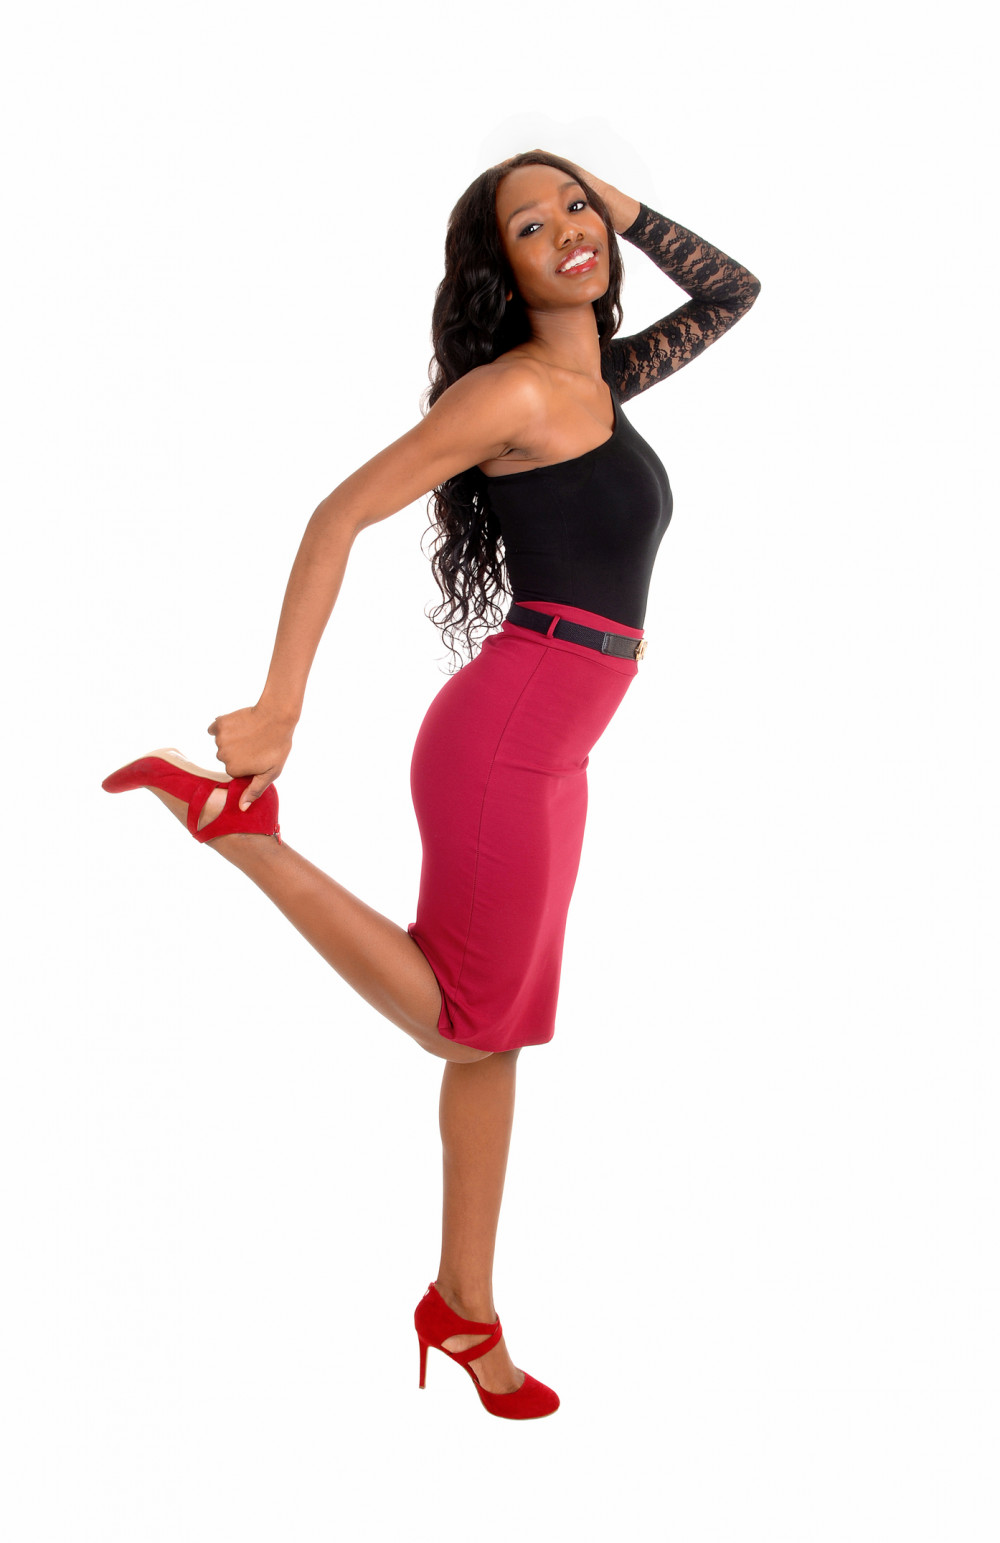 BN Prose: The Woman in the Red Spandex Skirt by Feyisayo Anjorin ...